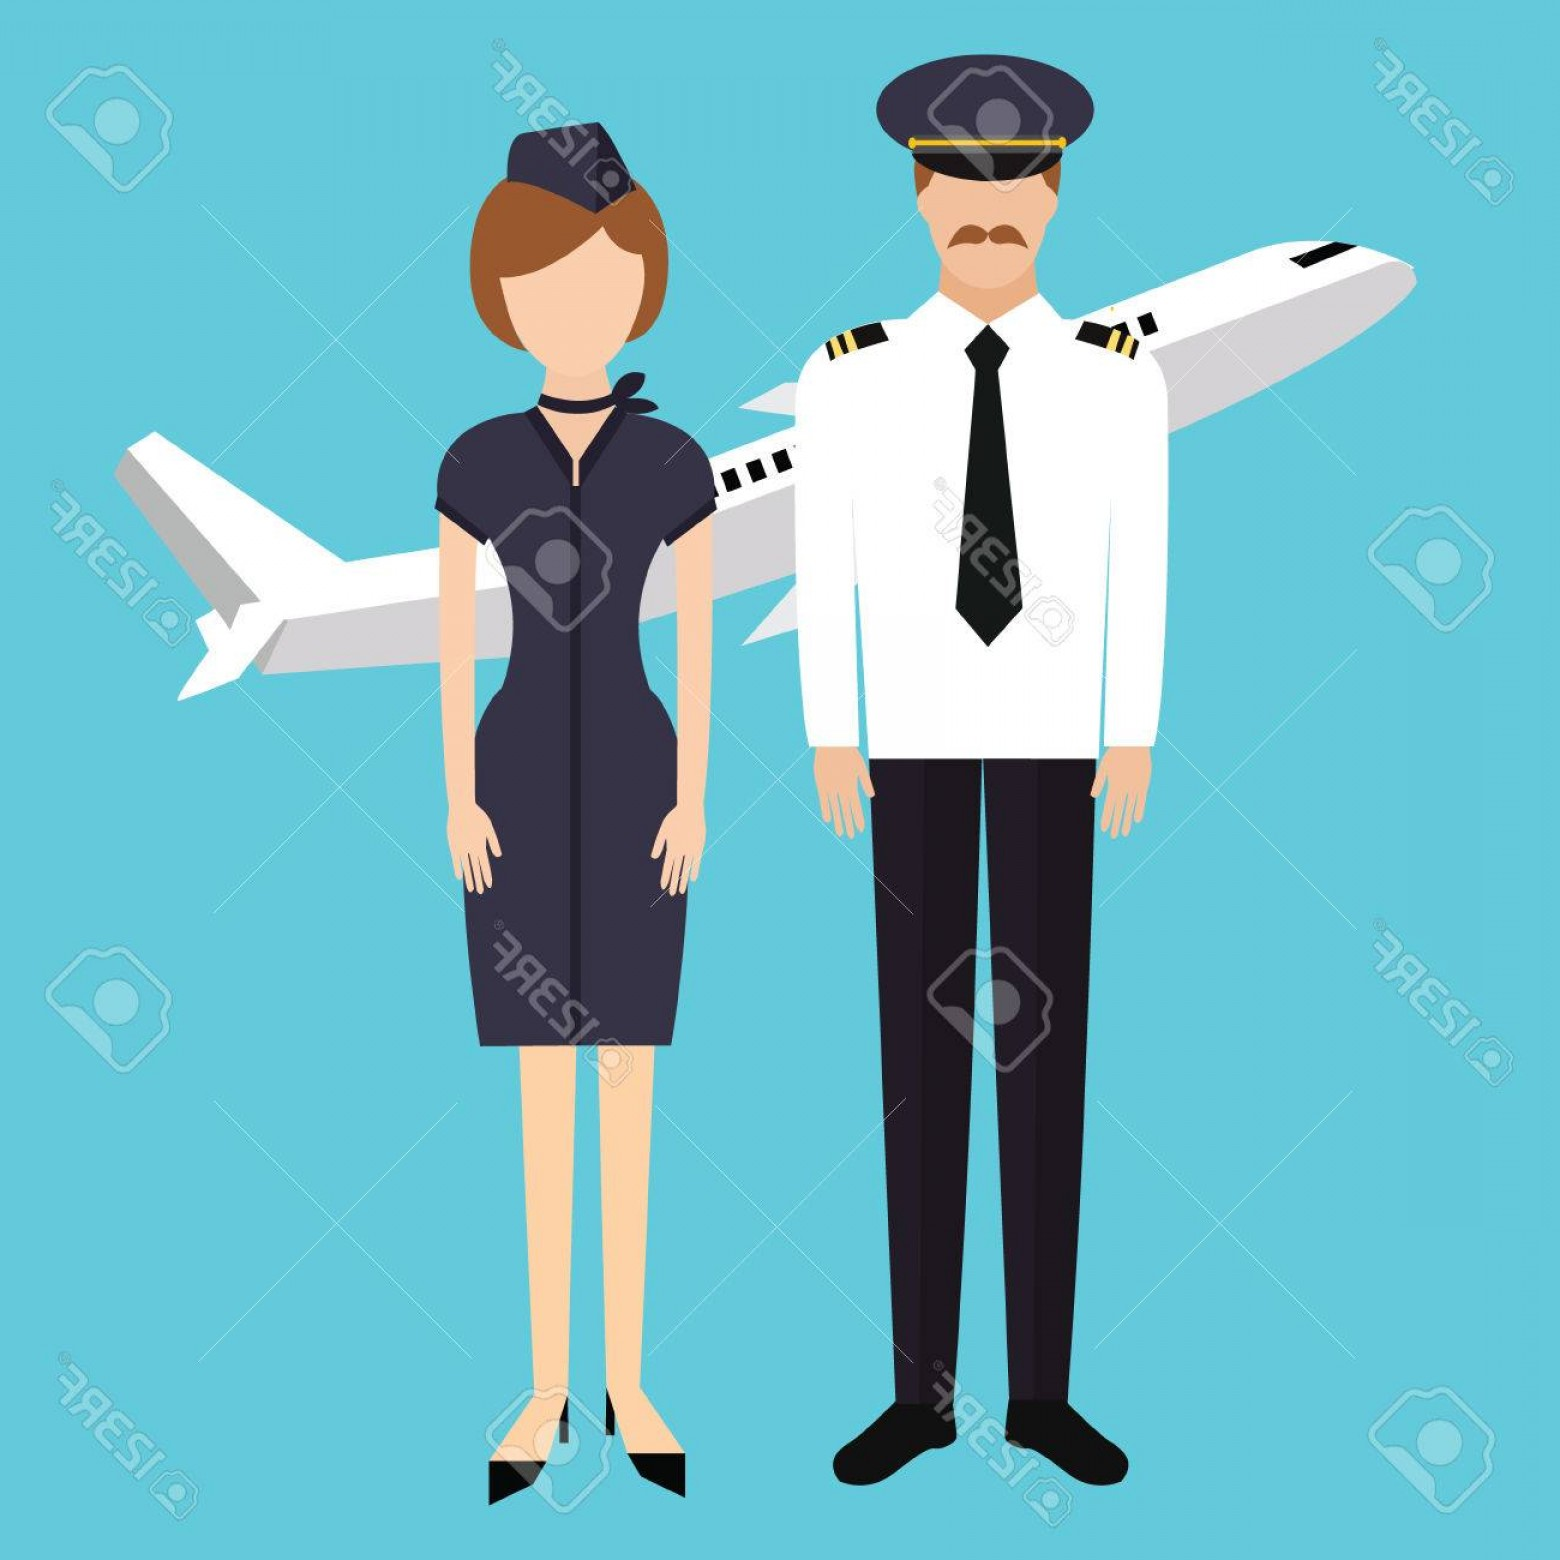 Vector Man Working In Cabin: Photostock Vector Pilot Stewardess Flight Attendance Cabin Crew In Uniform Plane Vector Character